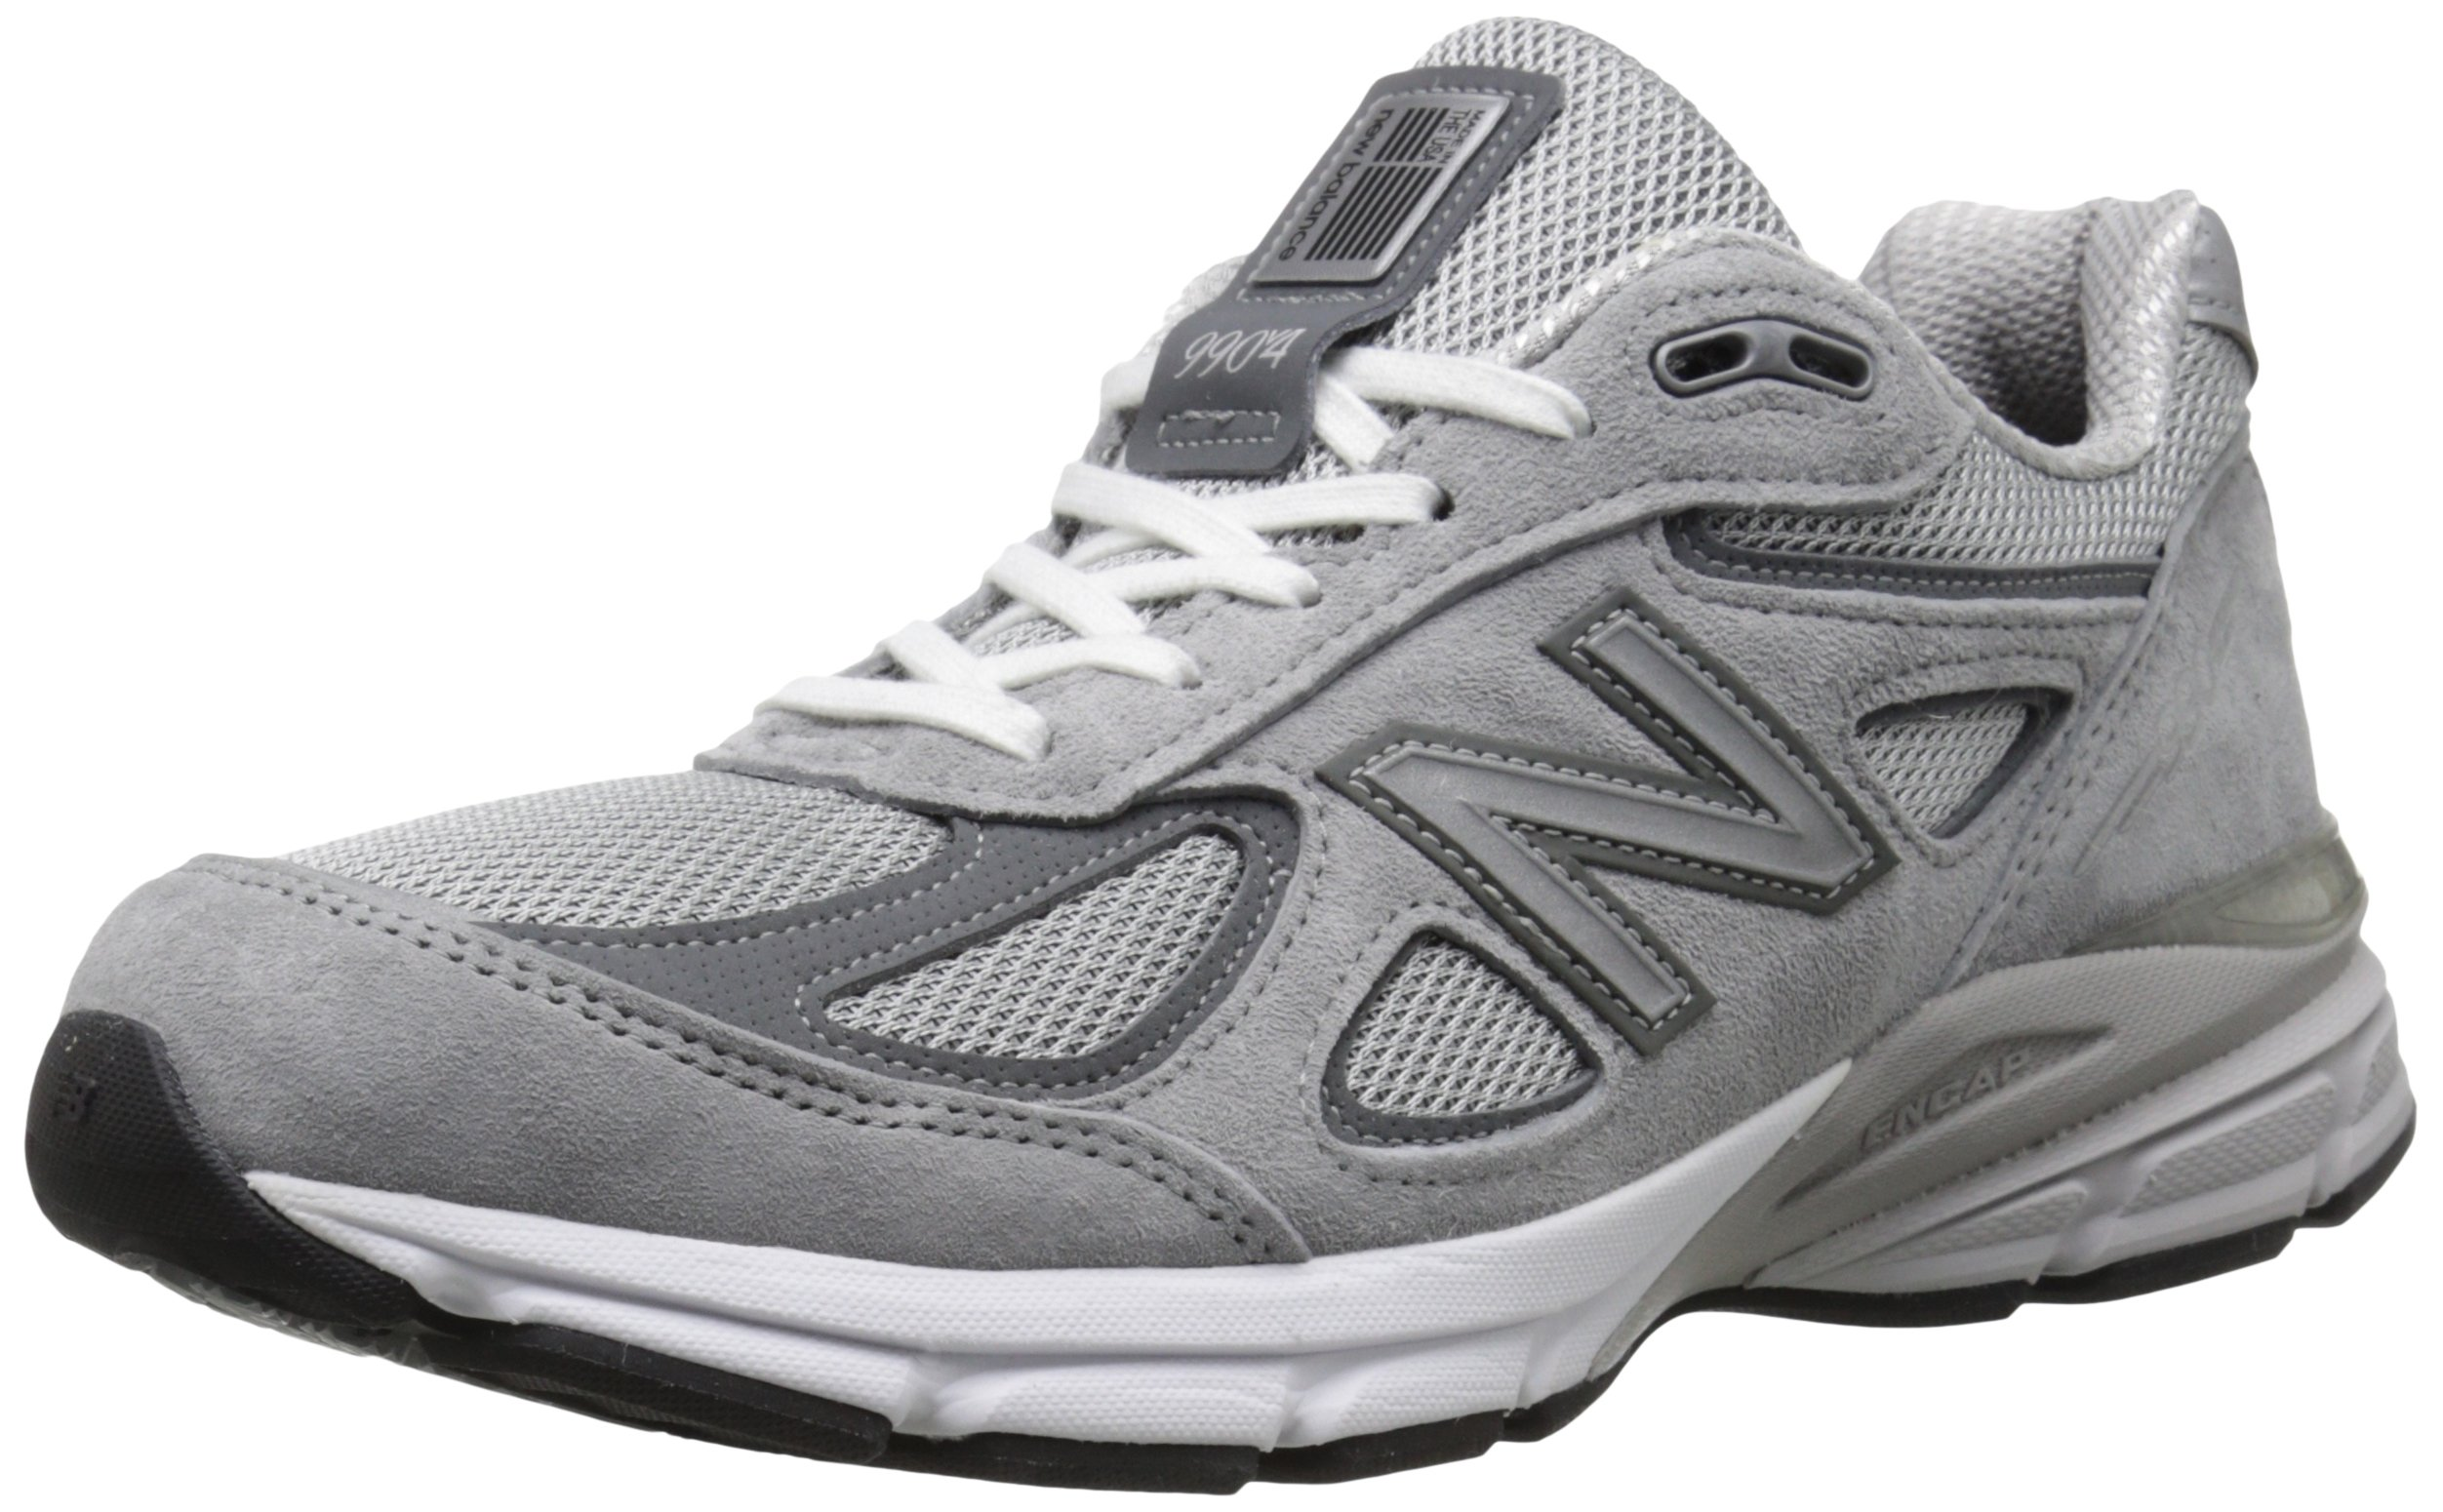 New Balance M990GL4: 990 Made in the USA Gray Castle Rock Mens Running Sneaker (8 D(M) US Men, Grey Castle Rock) by New Balance Athletic Shoe, Inc.